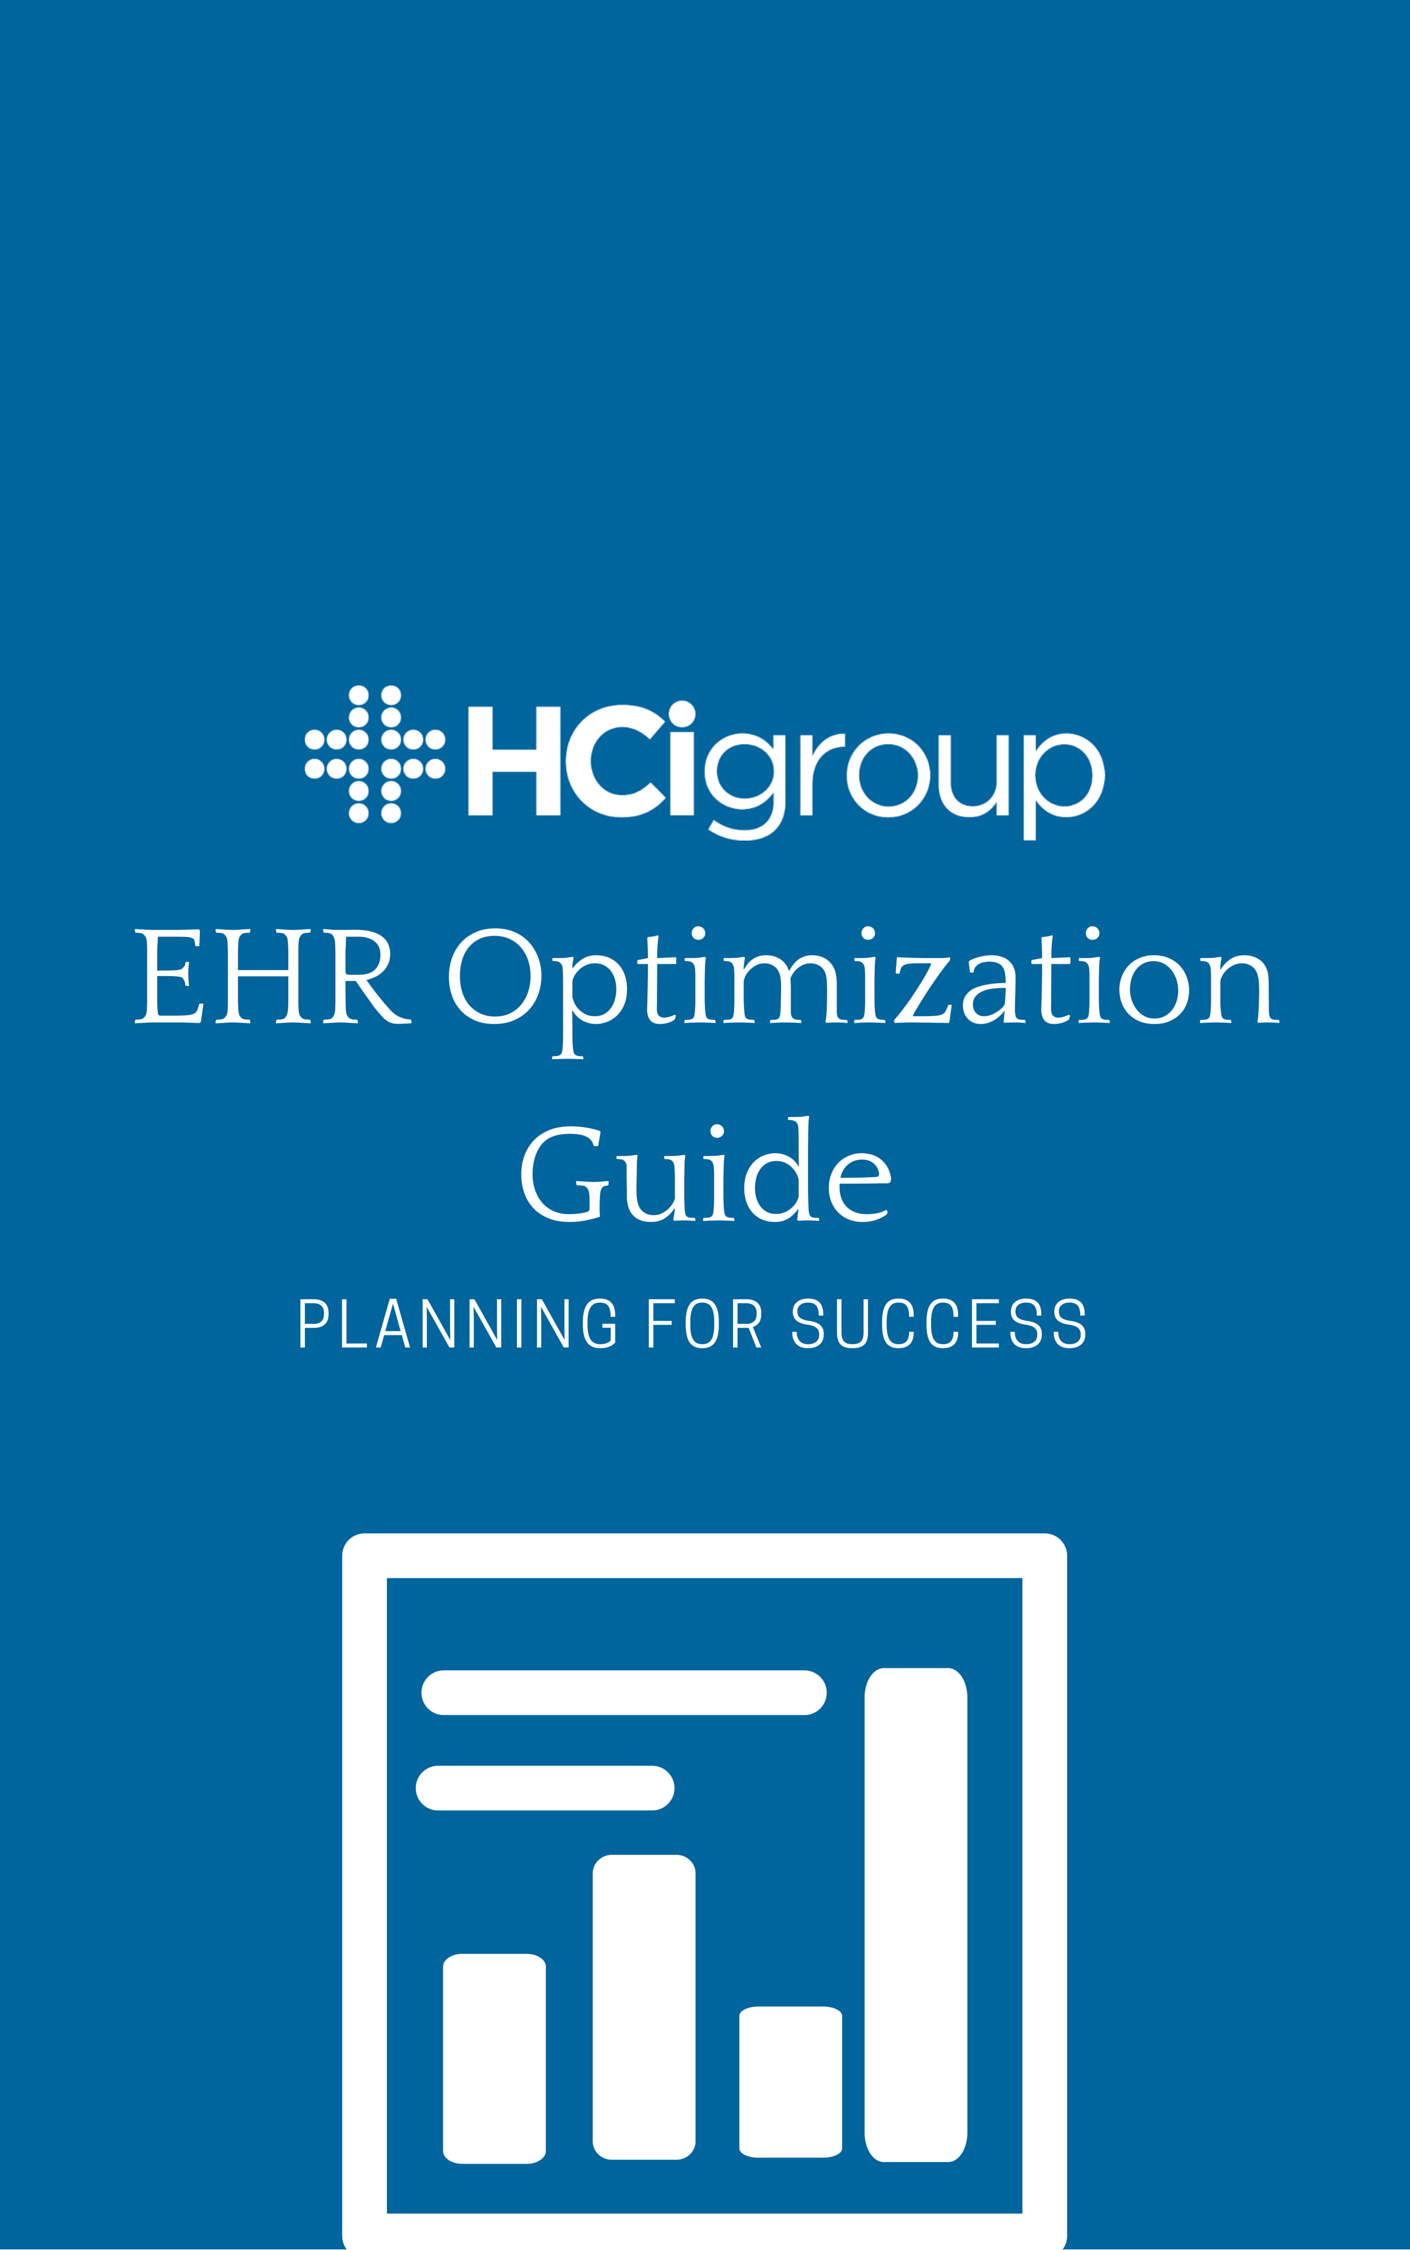 EHR Optimization Guide Planning Success